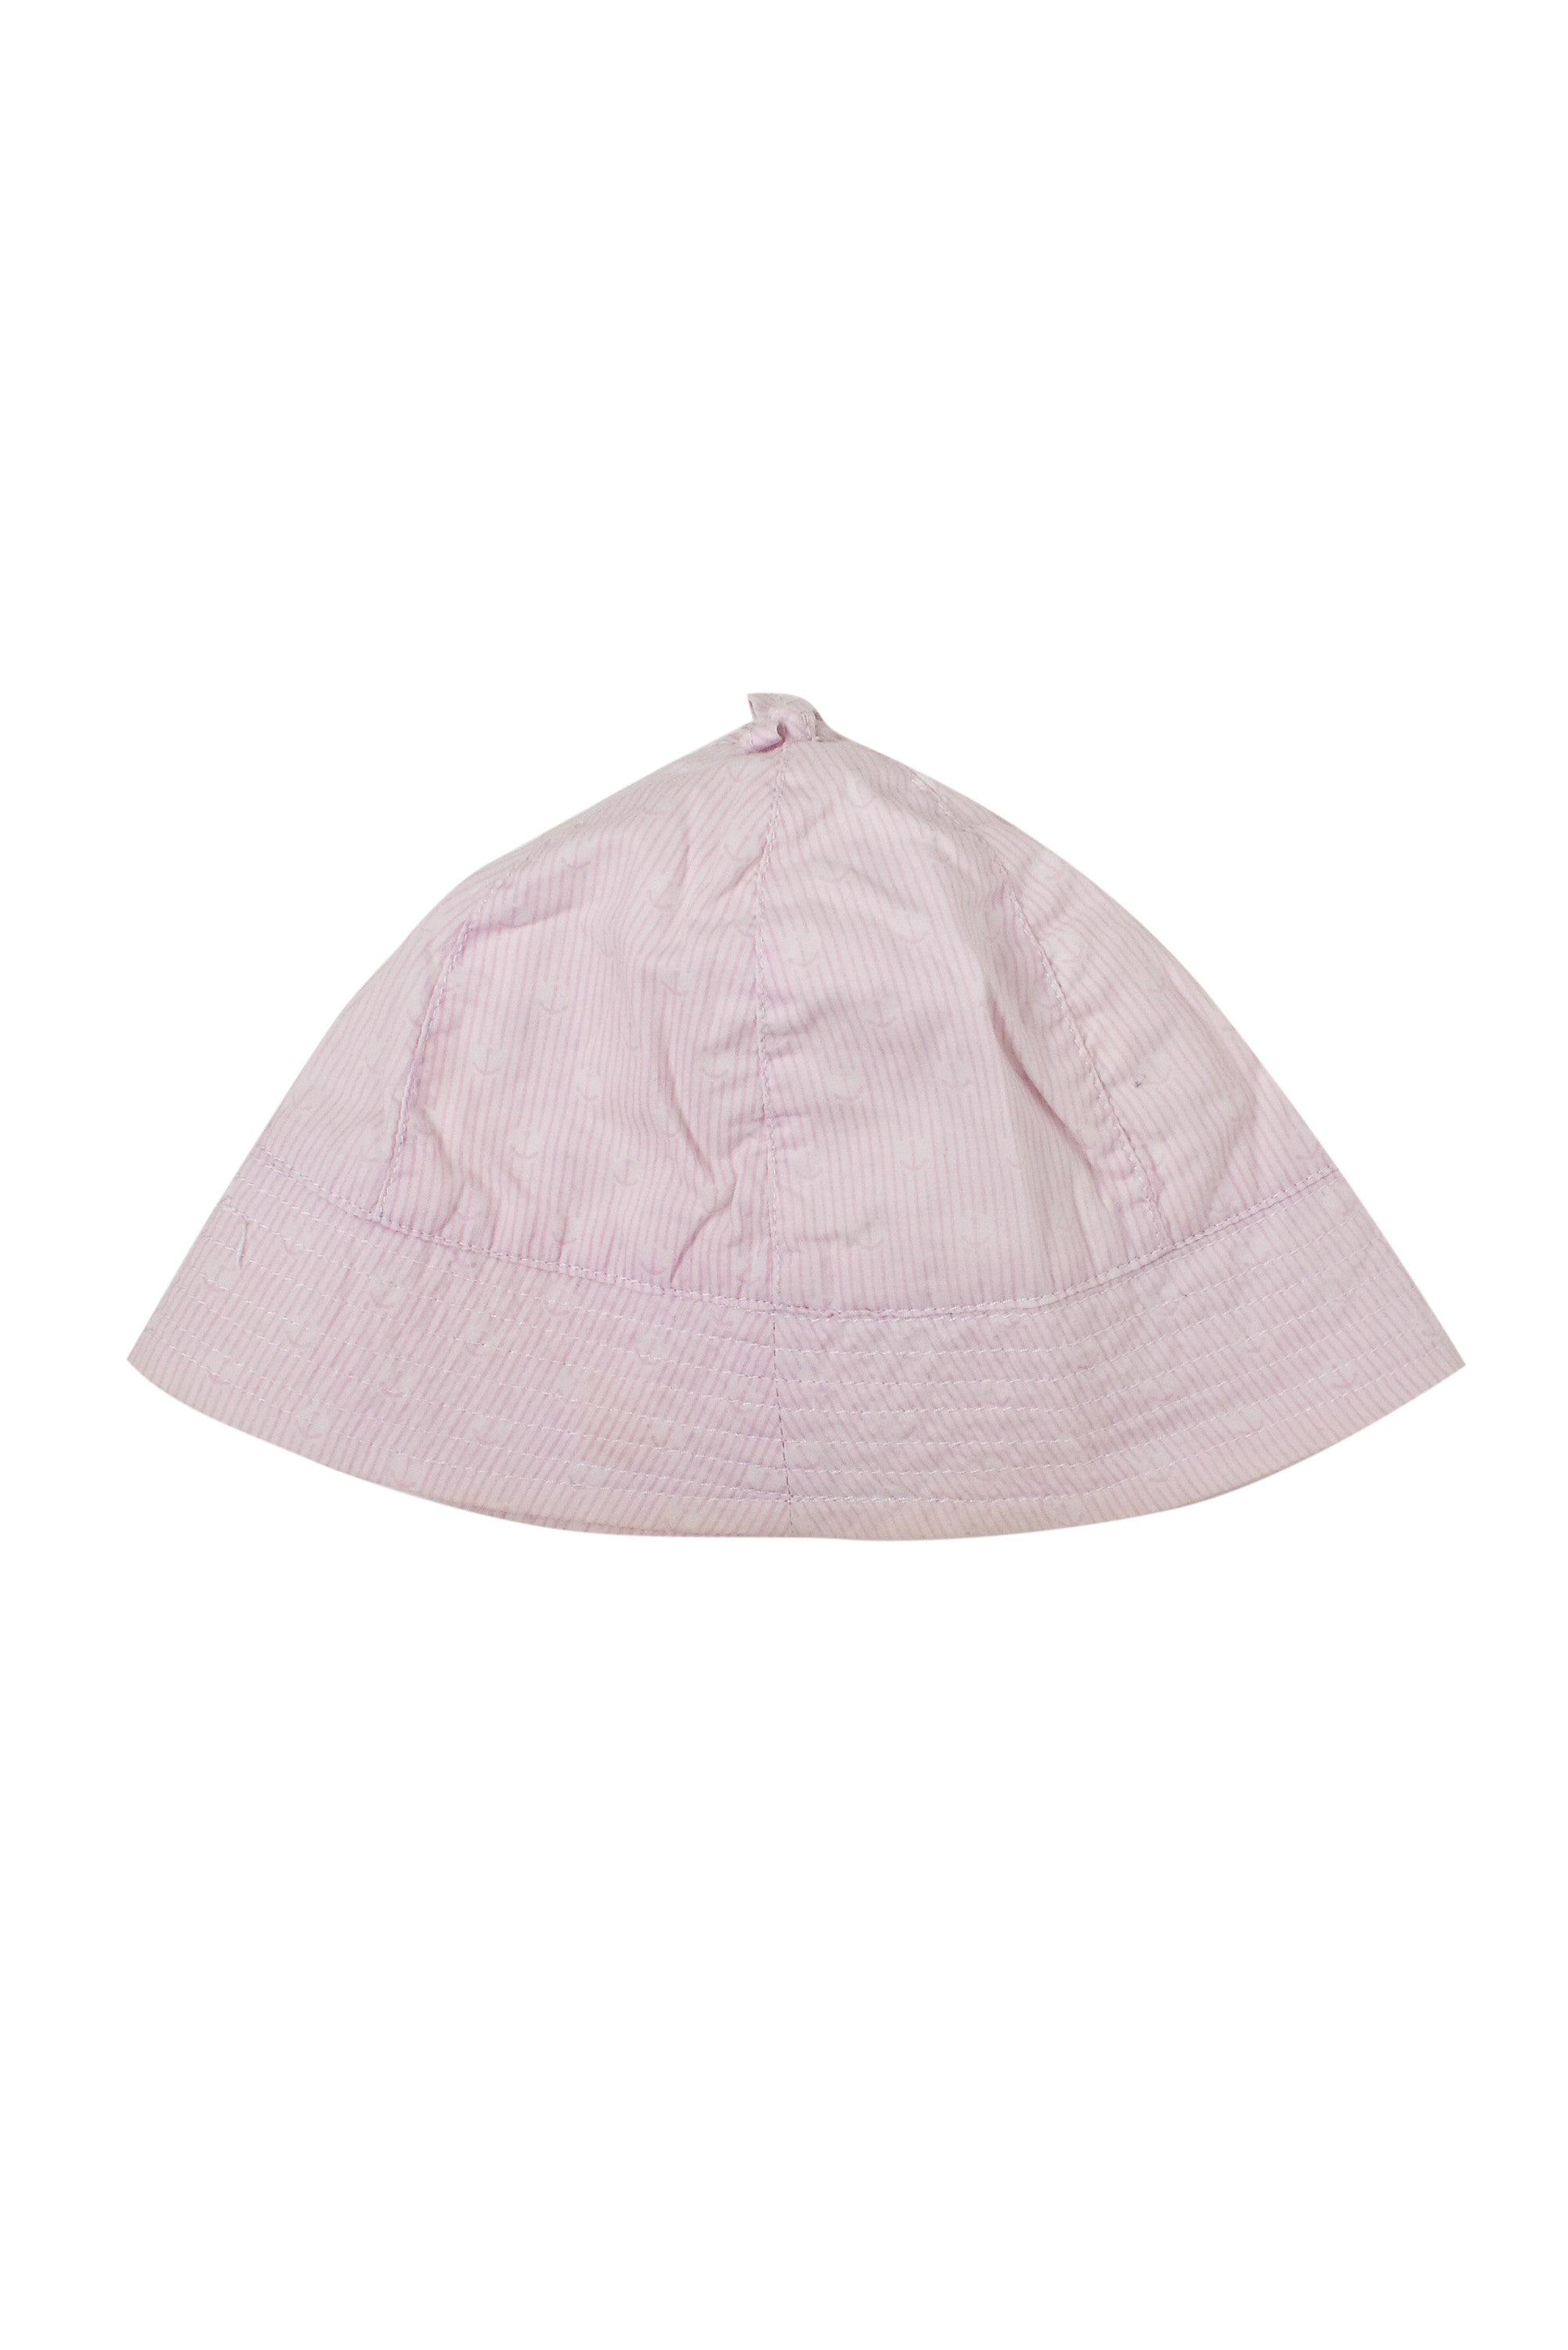 10004307 Jacadi Baby~Hat 0-3M (41 cm) at Retykle a26c8bfd411